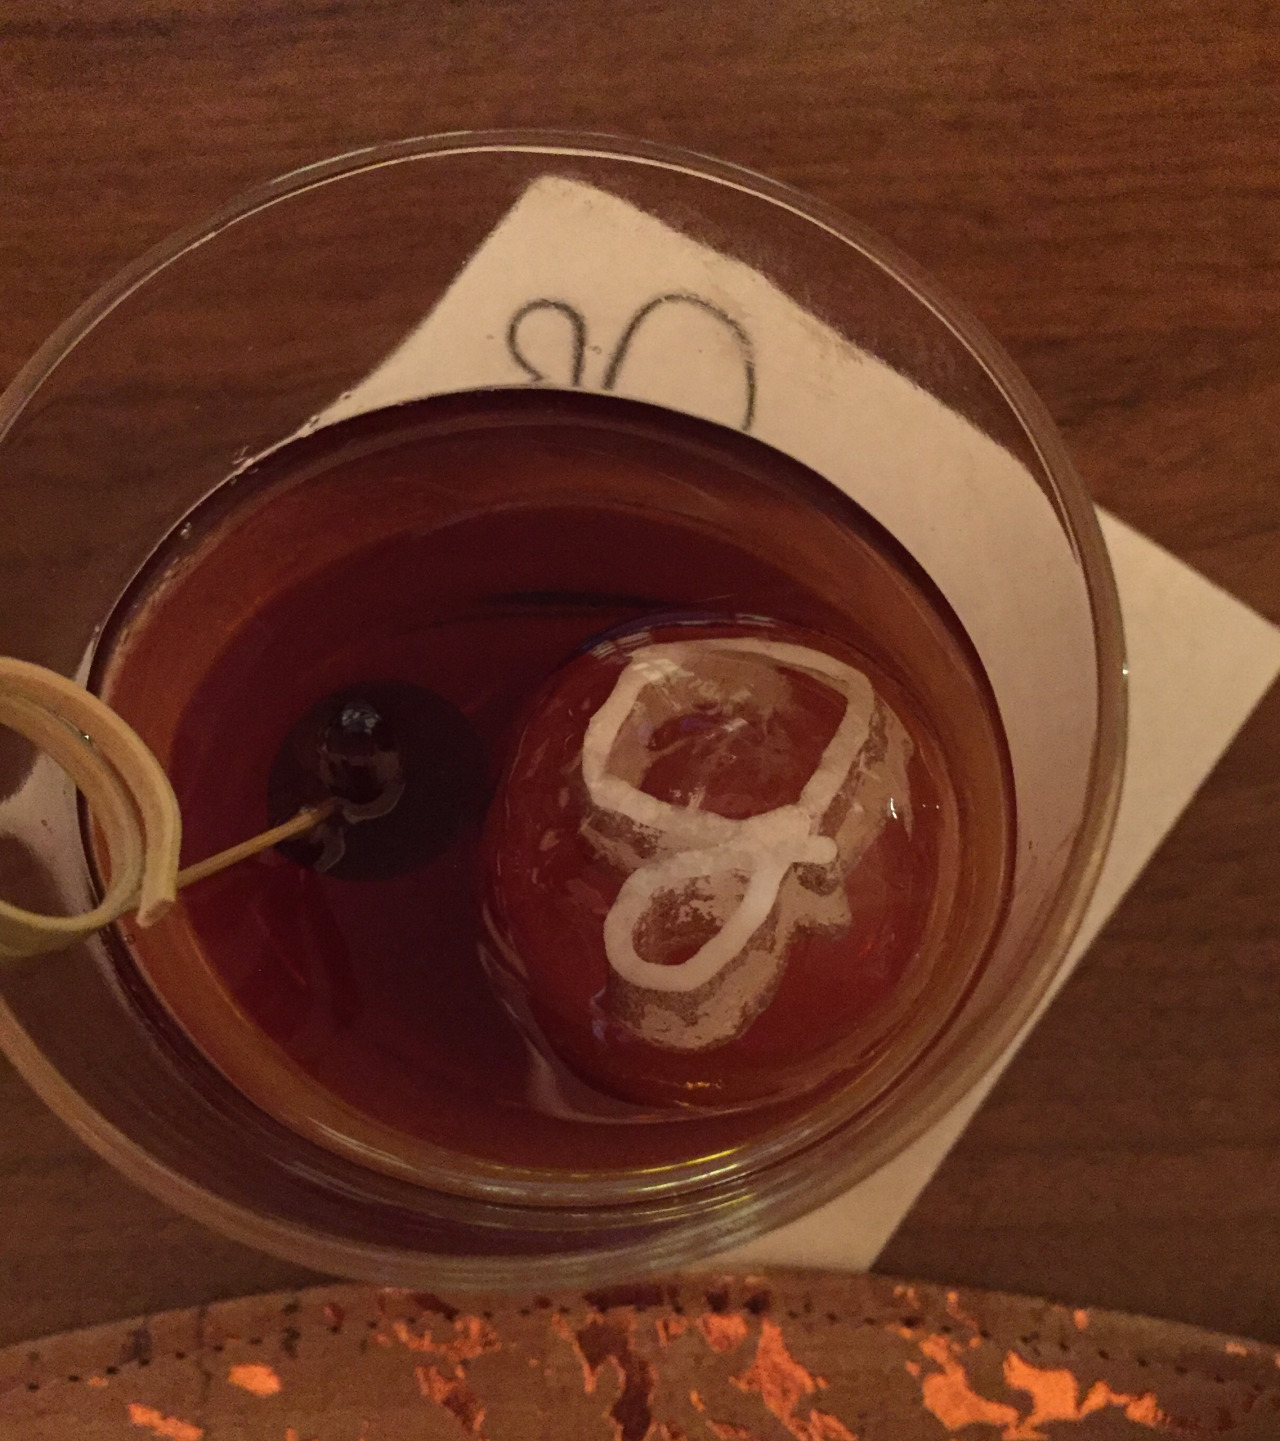 """Above: The Serpico cocktail at Giada's, in Las Vegas  A quick trip to Las Vegas  Last Thursday through Saturday, I was in Las Vegas for my job to exhibit at a medical conference. Exhibiting is fairly simple and less hours than managing a conference. Thus, it leaves me more time and energy to do things when I'm not working. This trip was booked about 2 weeks before I left, and luckily, I was able to make the most of my time there - in my opinion anyway. I quickly made a dinner reservation and a booked a show ticket.   Thursday : Thursday was a weird day, my flight left at 7:05 am and arrived in Las Vegas at 9 am. I checked in, checked out the exhibit space, and by the time I was out of the hotel searching for lunch fare, it was 10:45 and I was not looking for breakfast or brunch, but it was still morning. I walked out of Planet Hollywood (the conference hotel, where I stayed) and vowed to stop at the first place that had availability That place was Hexx Kitchen and Bar at the Paris Hotel. I ate Chilaquiles and had a California beer of which the name escapes me. #FAIL. I know that is bad of me, to forget such an important detail. The chilaquiles were good and hit the spot between""""I want lunch but its still brunch in Vegas and I don't want to wait 15 more minutes to order a burger."""" My hanger was real.  After lunch, setting up, taking a nap in my hotel, then heading to  Polecats Aerial Fitness  for a silks class, I showered and headed to dinner at  Giada's . I had a reservation for one, but sat at the bar because that is what I prefer when I travel alone. The bartenders and the baristas behind the bars of the world are always happy to chat with solo diners. I've had some very interesting conversations and met some very nice people this way.  After a careful look at the menu, some reason I was not terribly hungry, I decided upon the duck prosciutto, the brussel sprouts crostini, the serpico cocktail, and I said yes to the bread service - which was amazing. There was a r"""